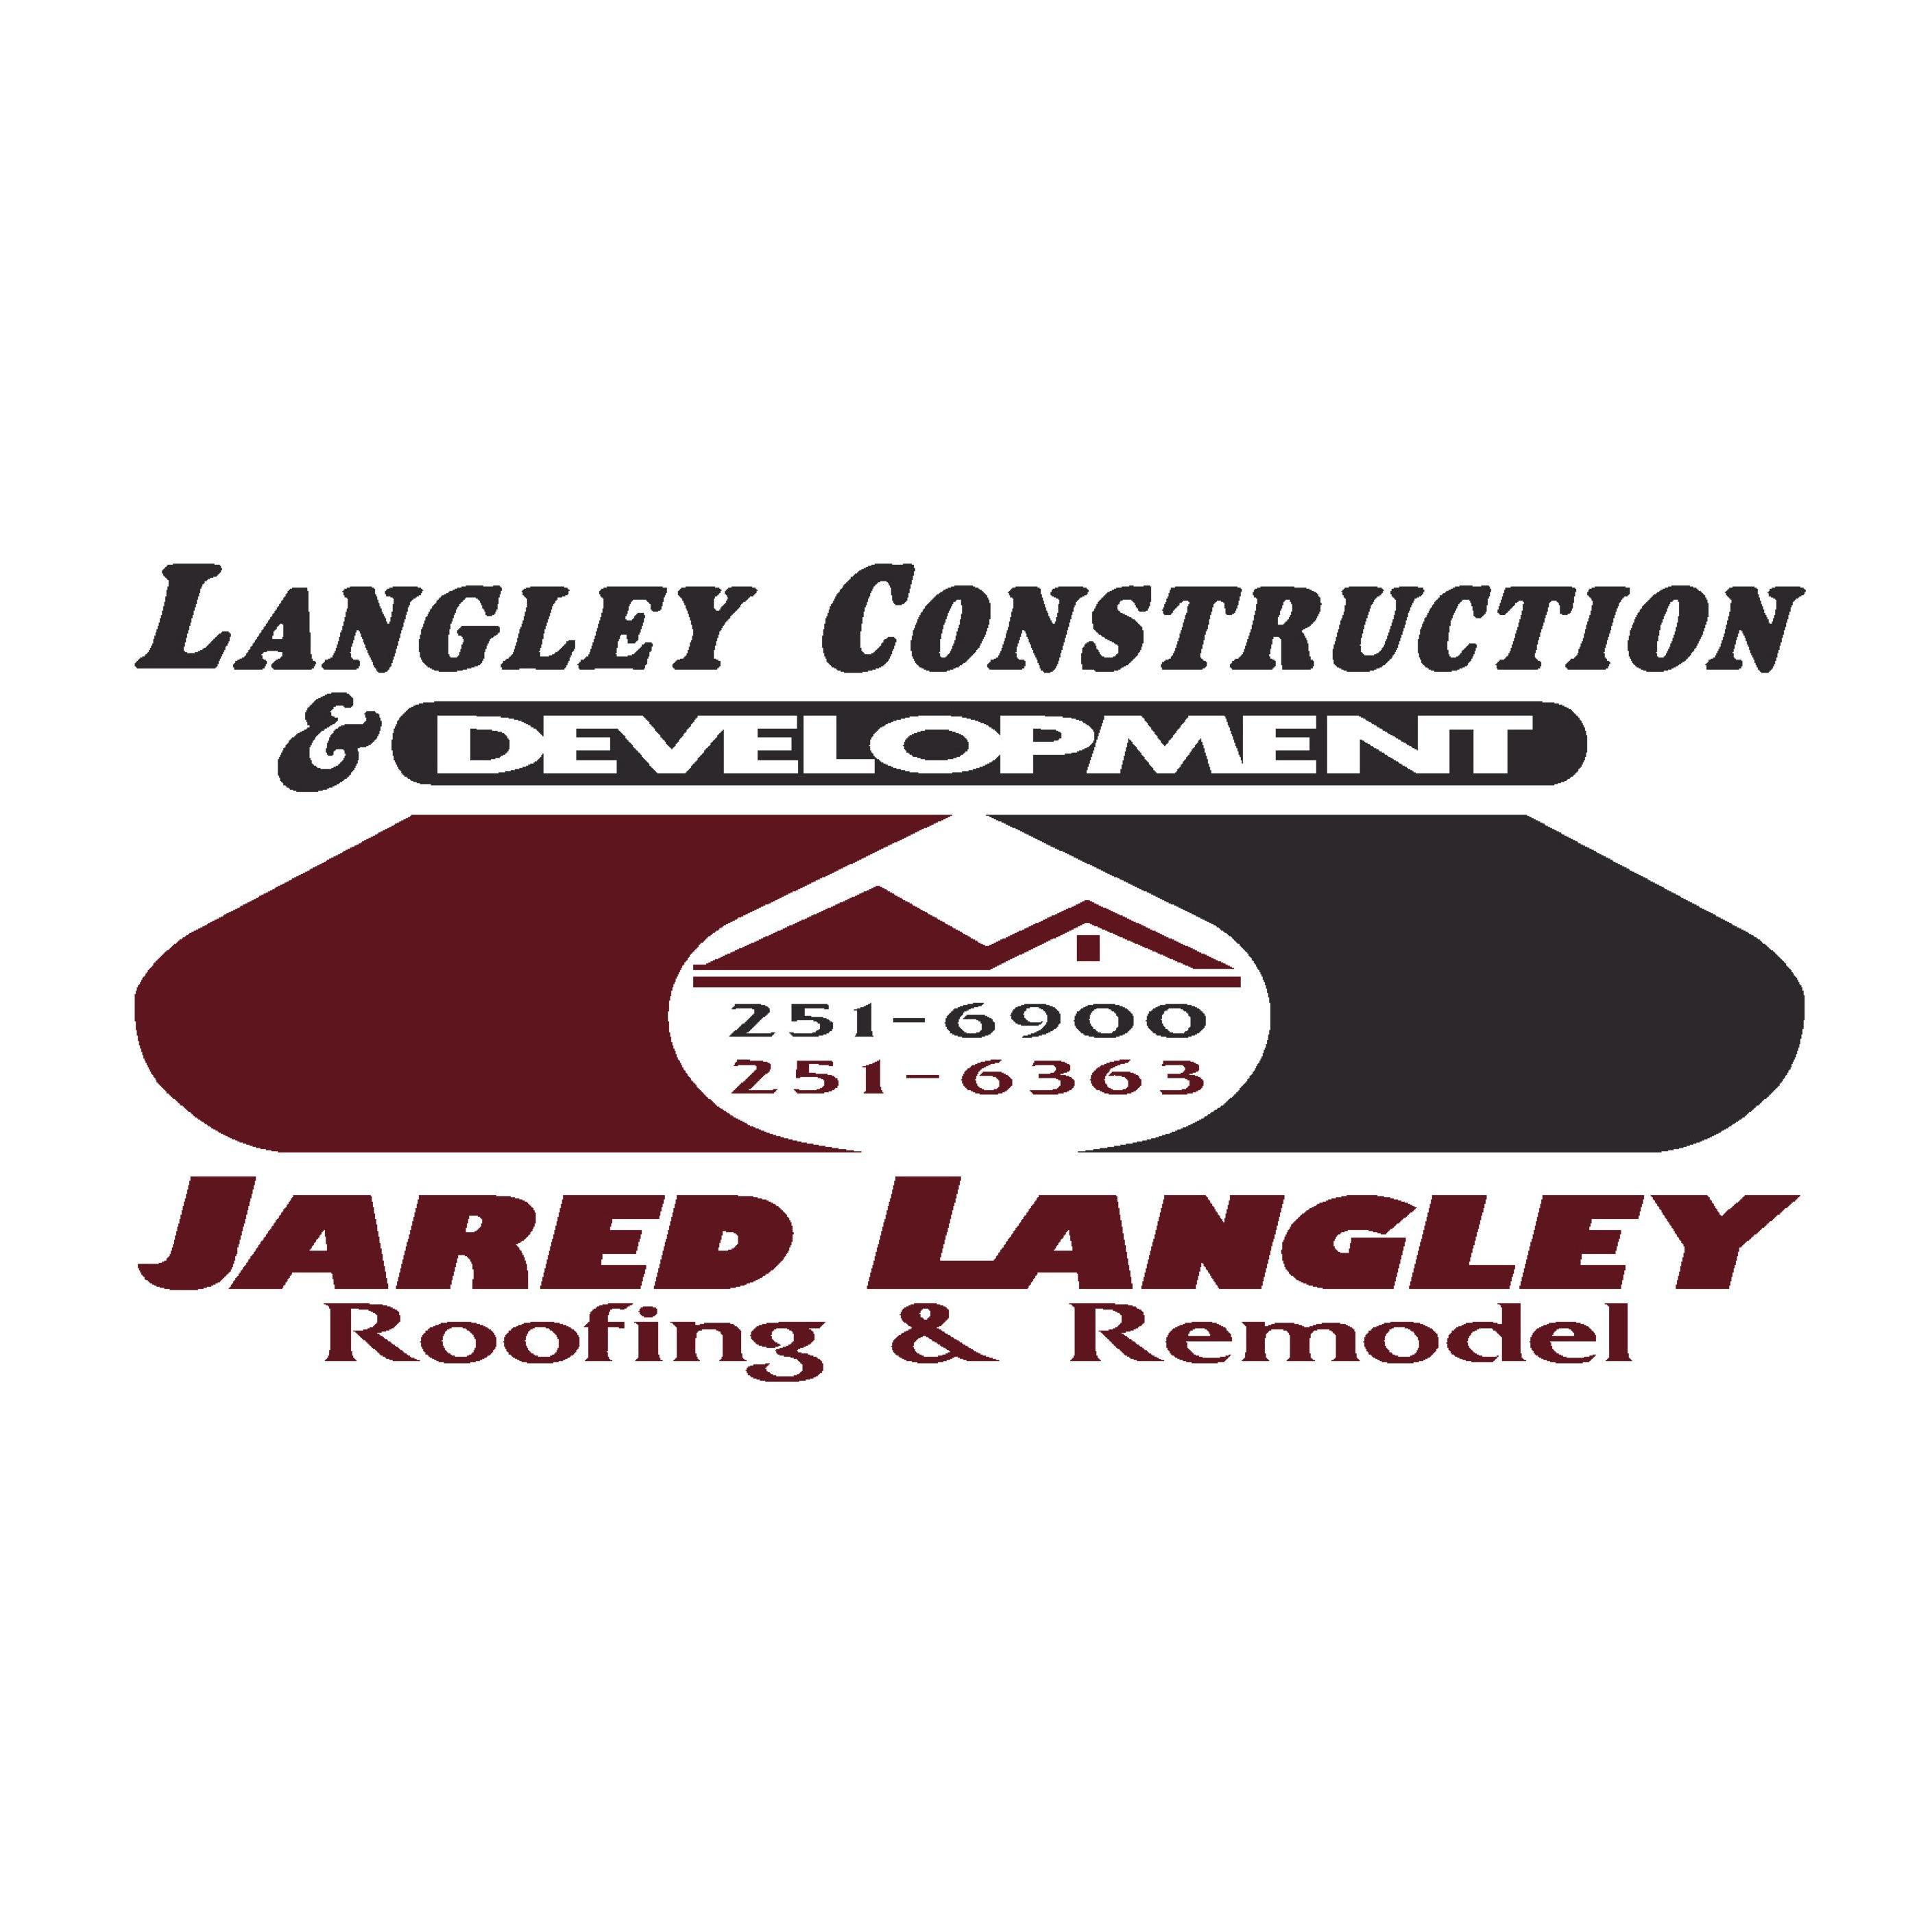 Jared Langley Enterprises, Inc.